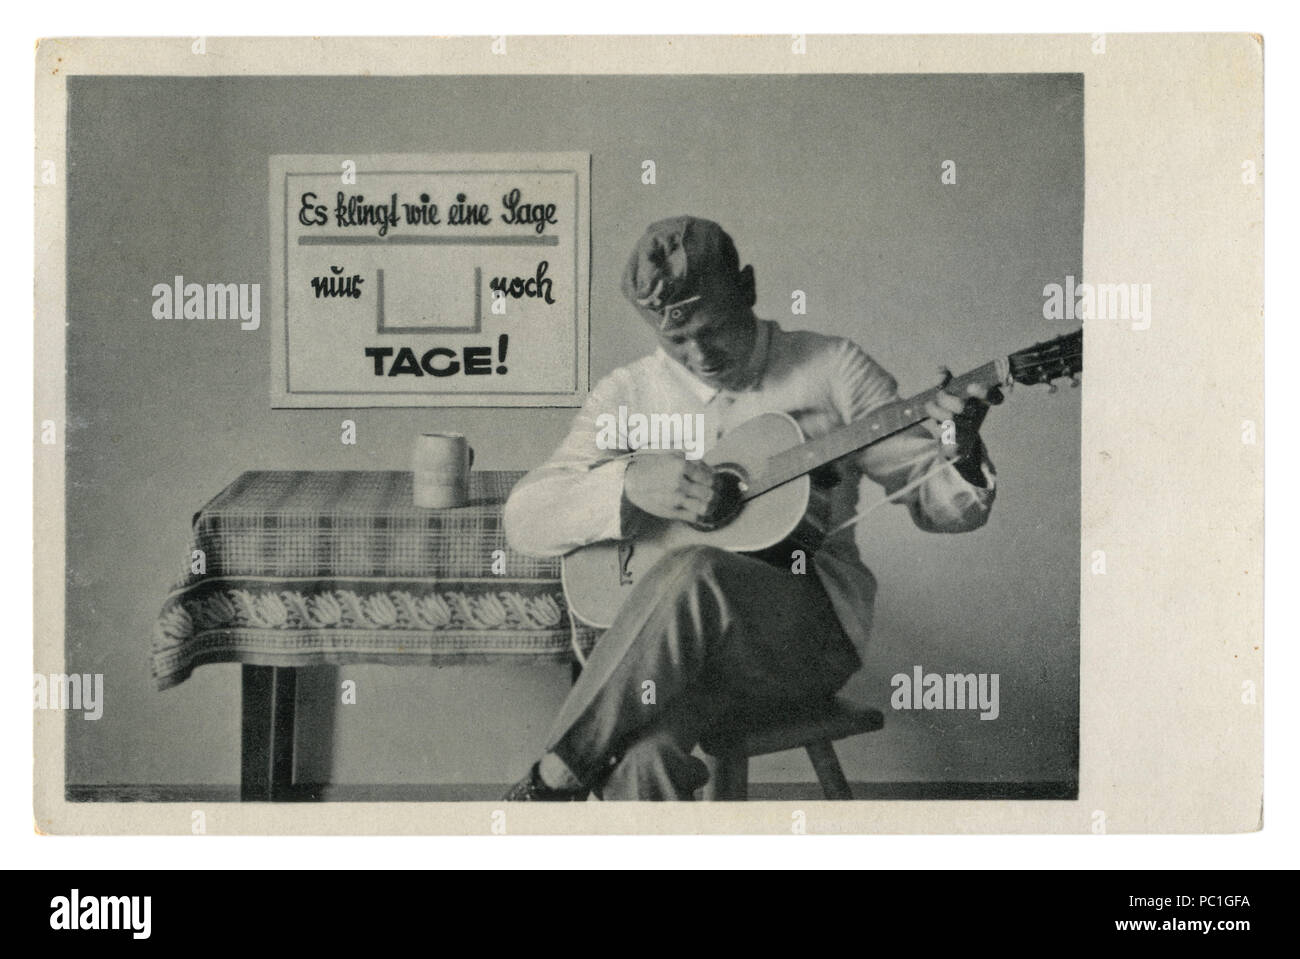 German historical photo postcard: soldier in forage cap plays guitar sitting on a chair. The army's leisure, world war two, Germany, Third Reich - Stock Image